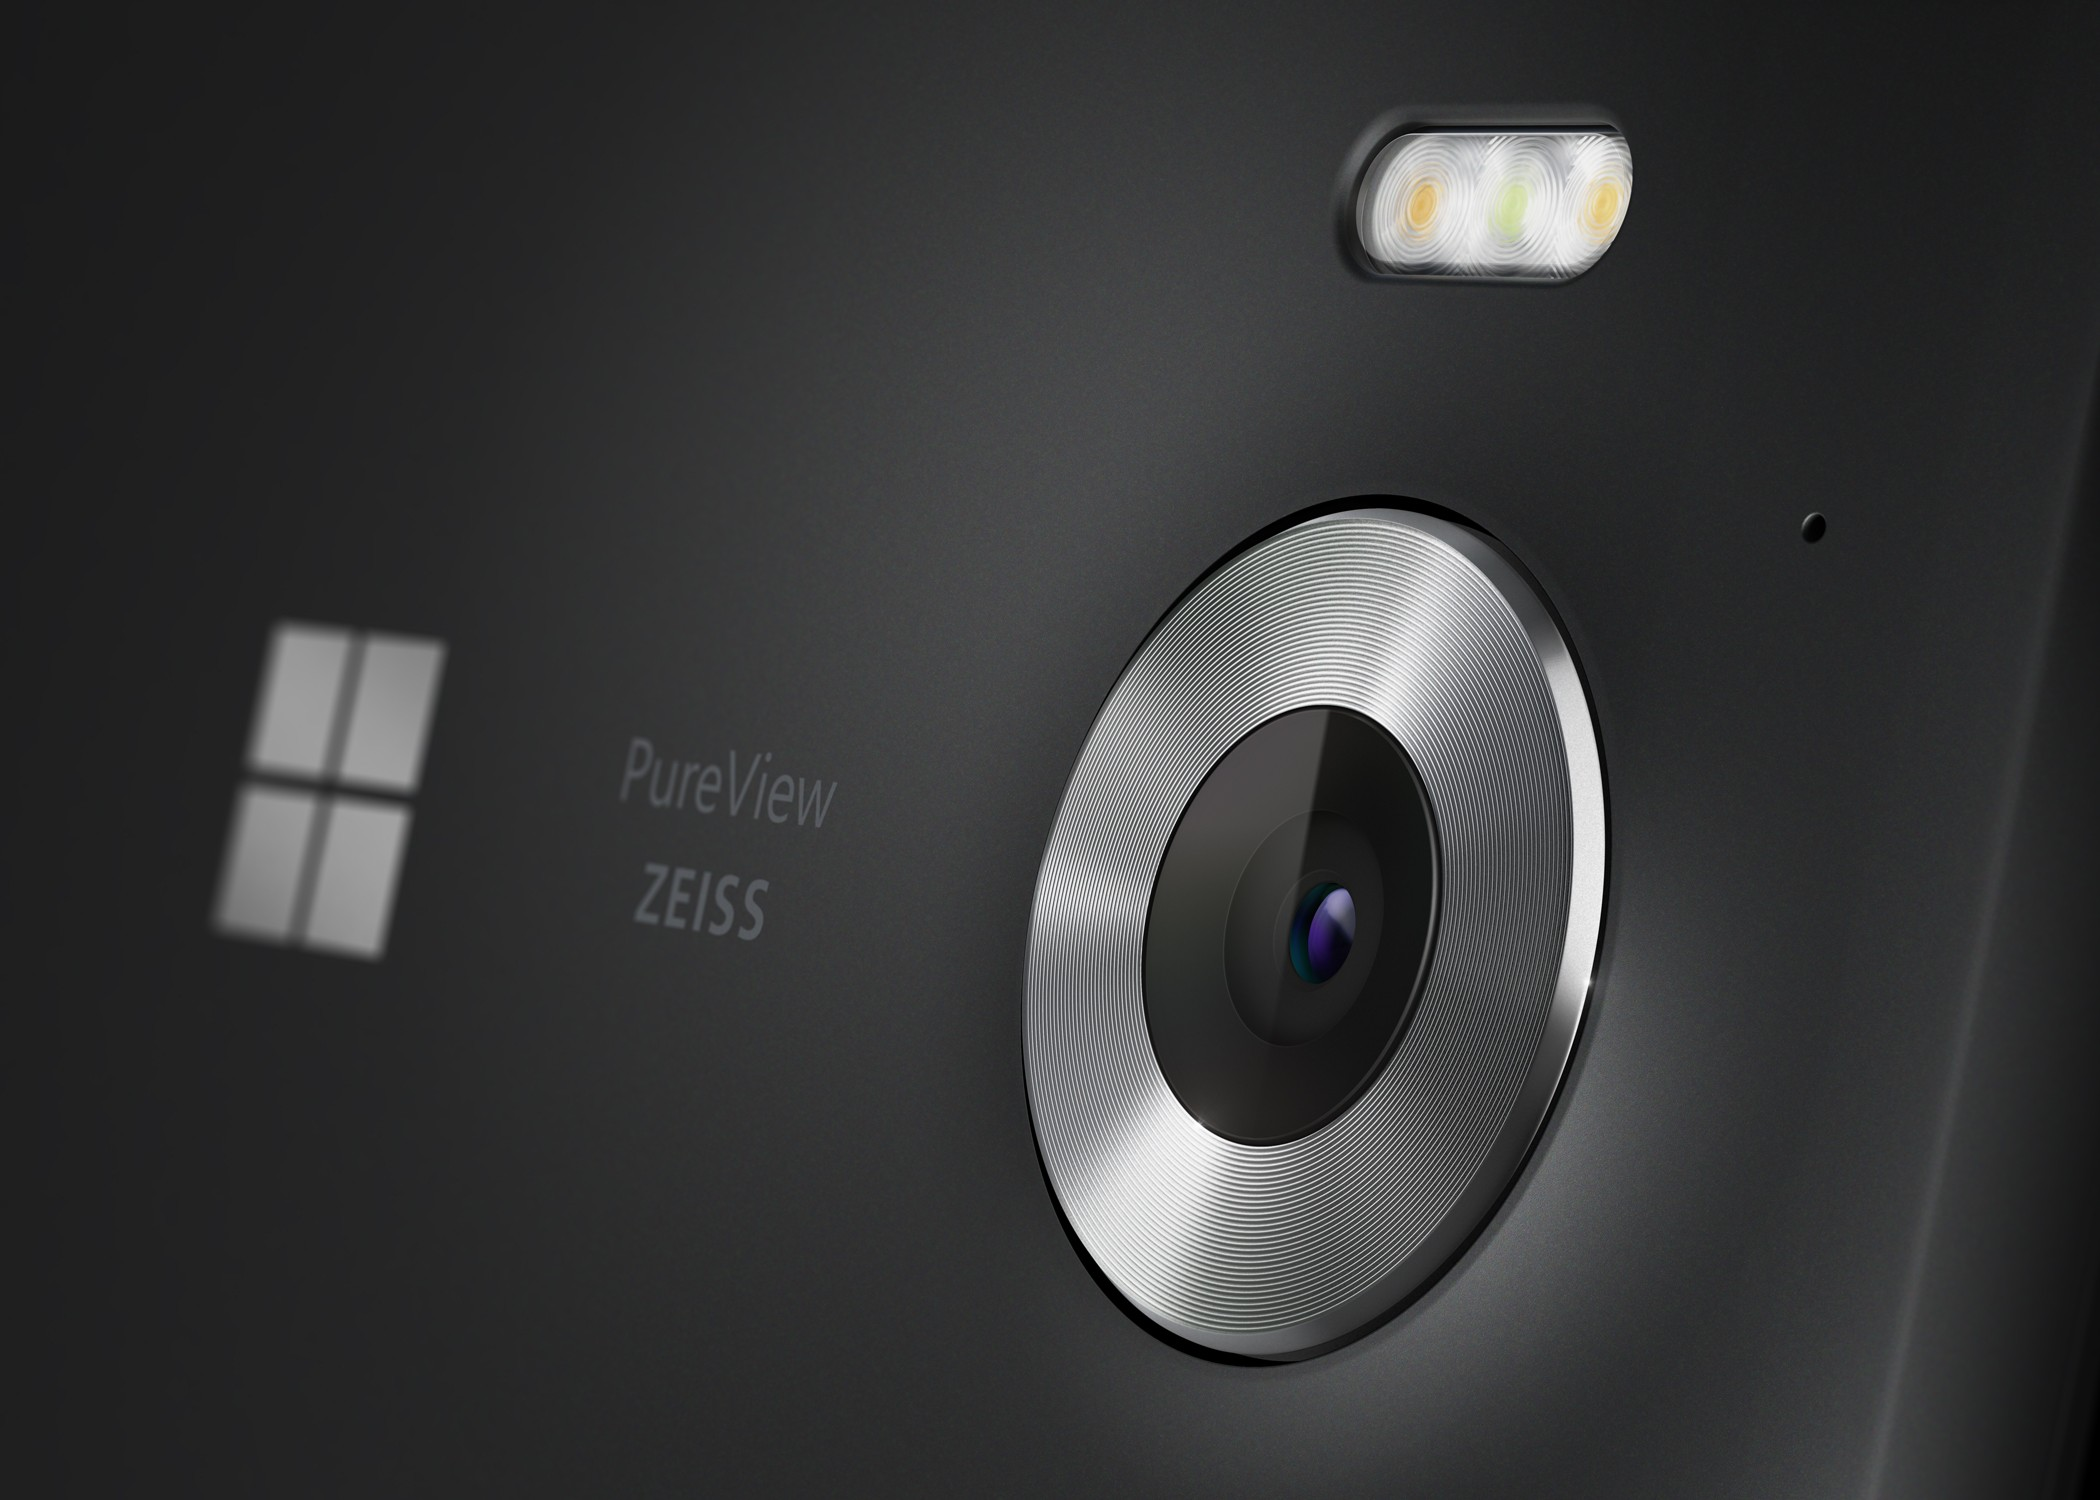 microsoft-lumia-950-xl-vs-lumia-1520-camera-samples-494347-2